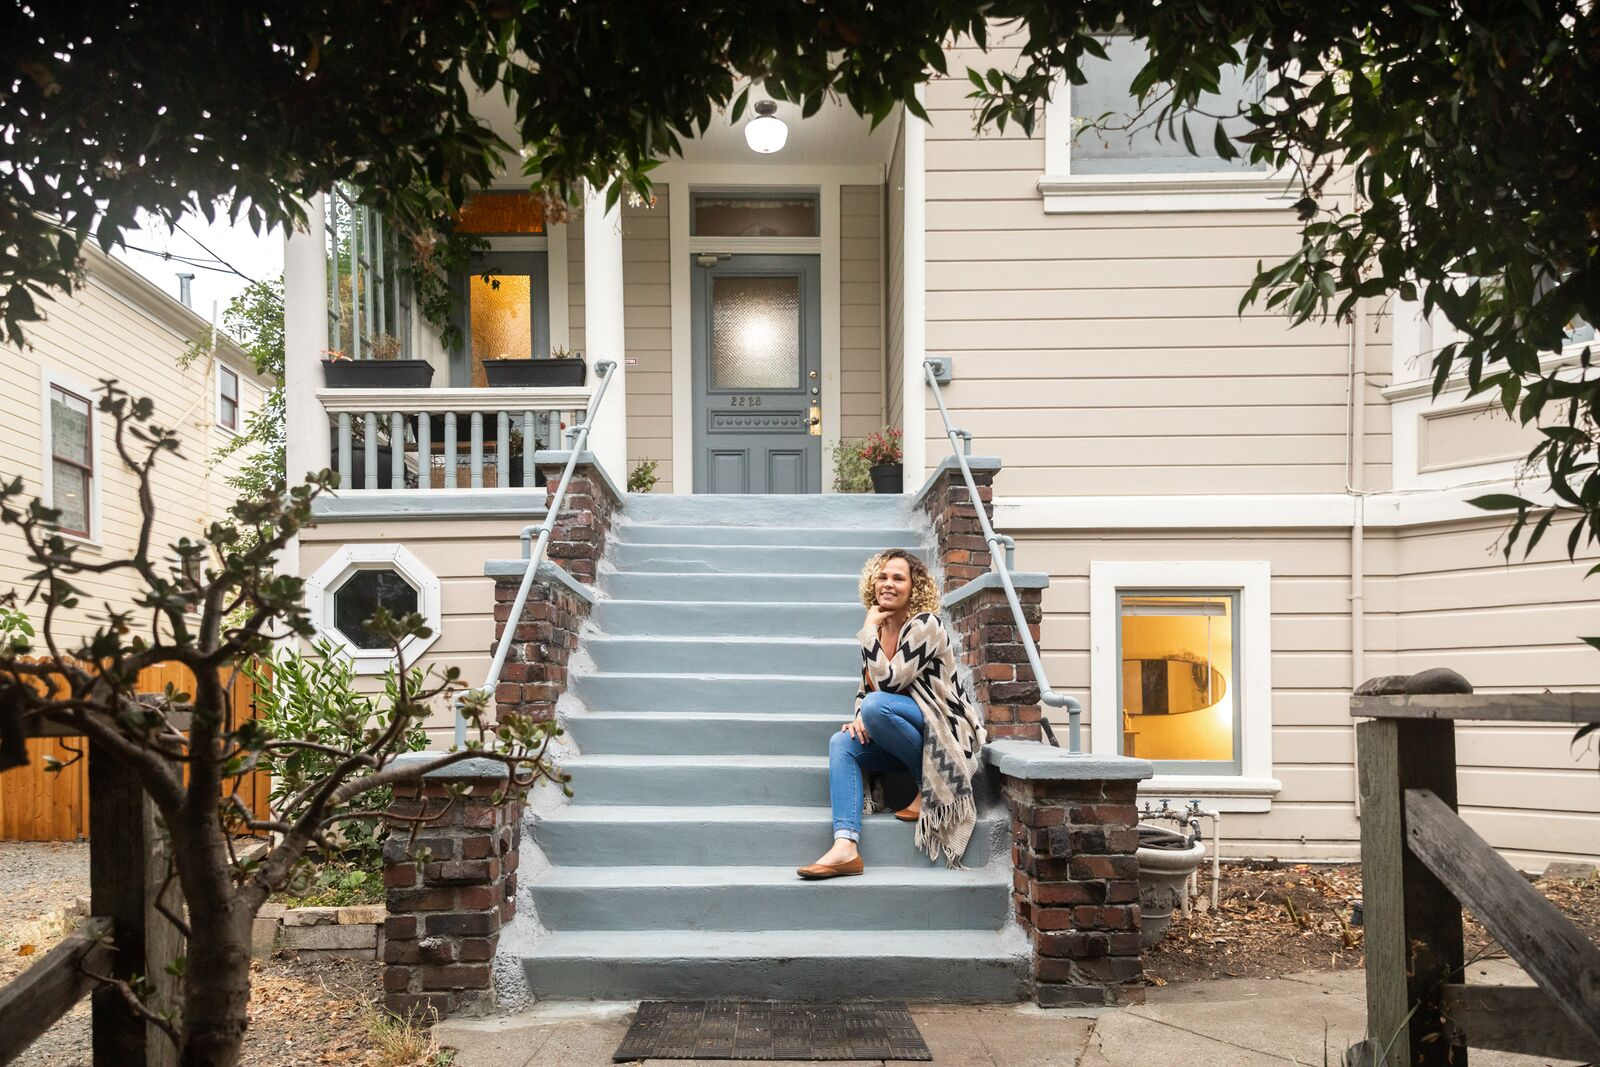 Kimberly Jean, who grew up in the house at 2228 McKinley Ave., poses for a photo on the front steps, on August 20, 2021. Credit: Kelly Sullivan